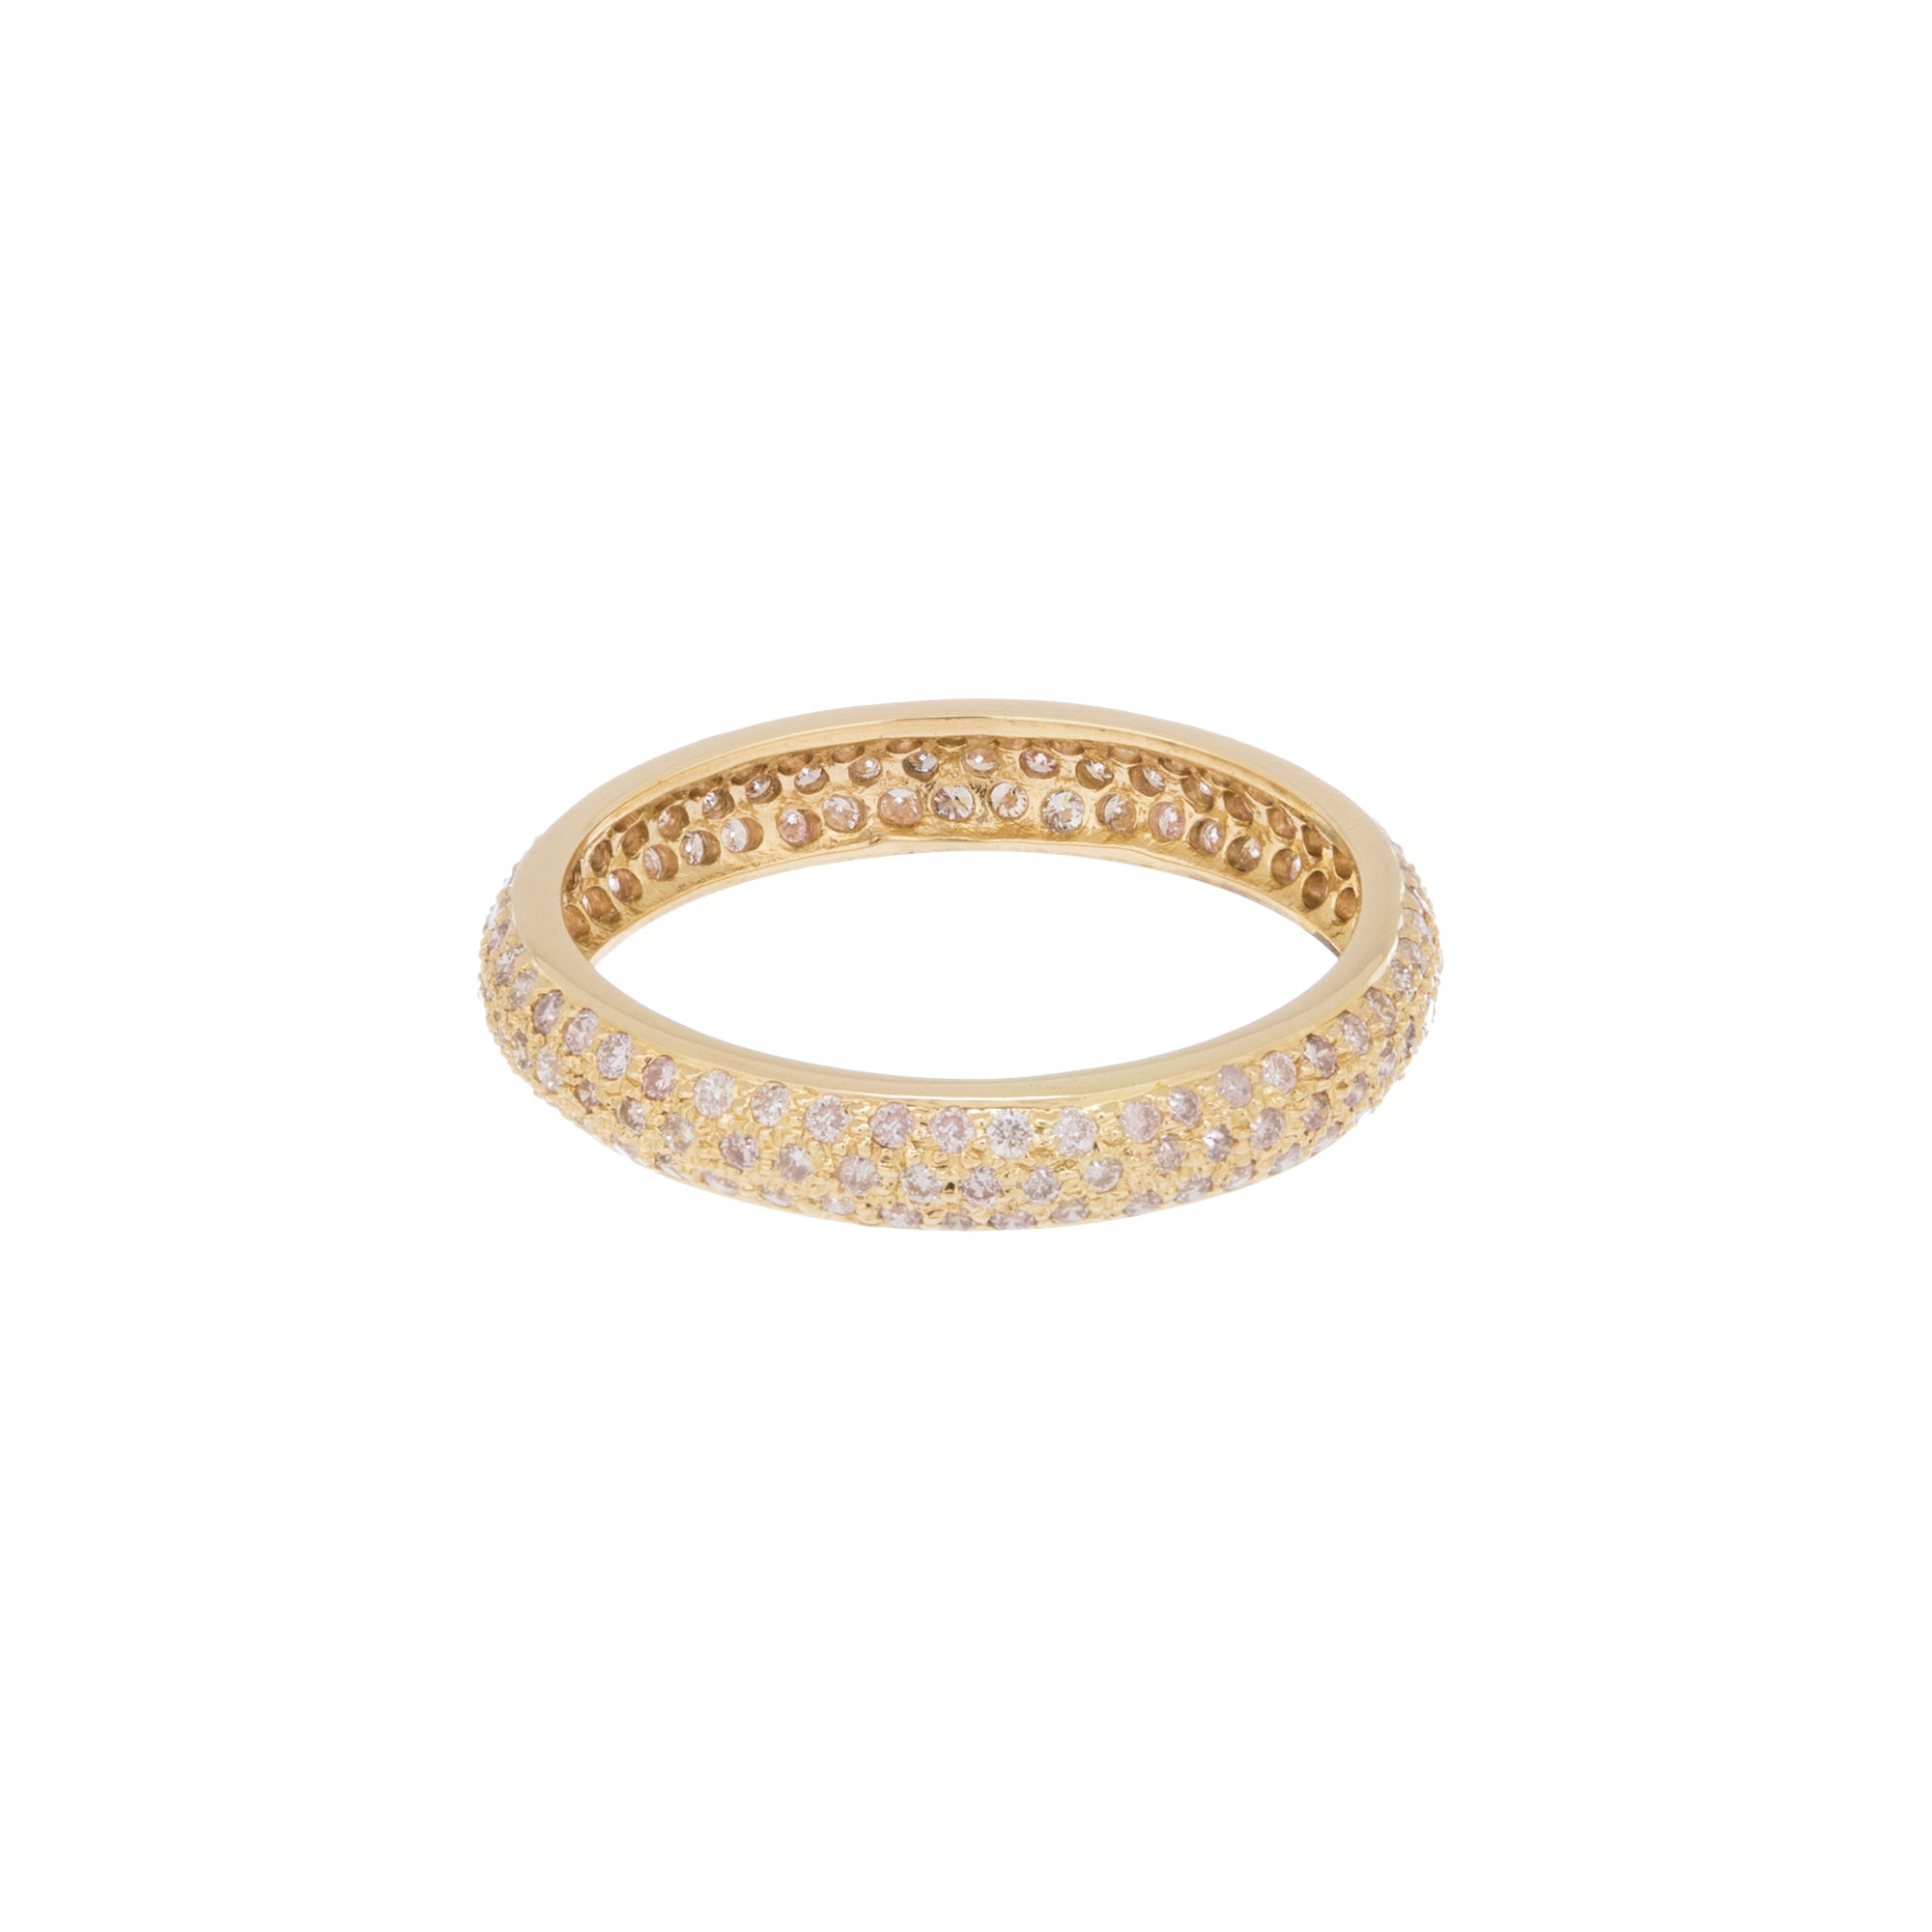 White Diamond Yellow Gold Tire Band by Sethi Couture for Broken English Jewlery